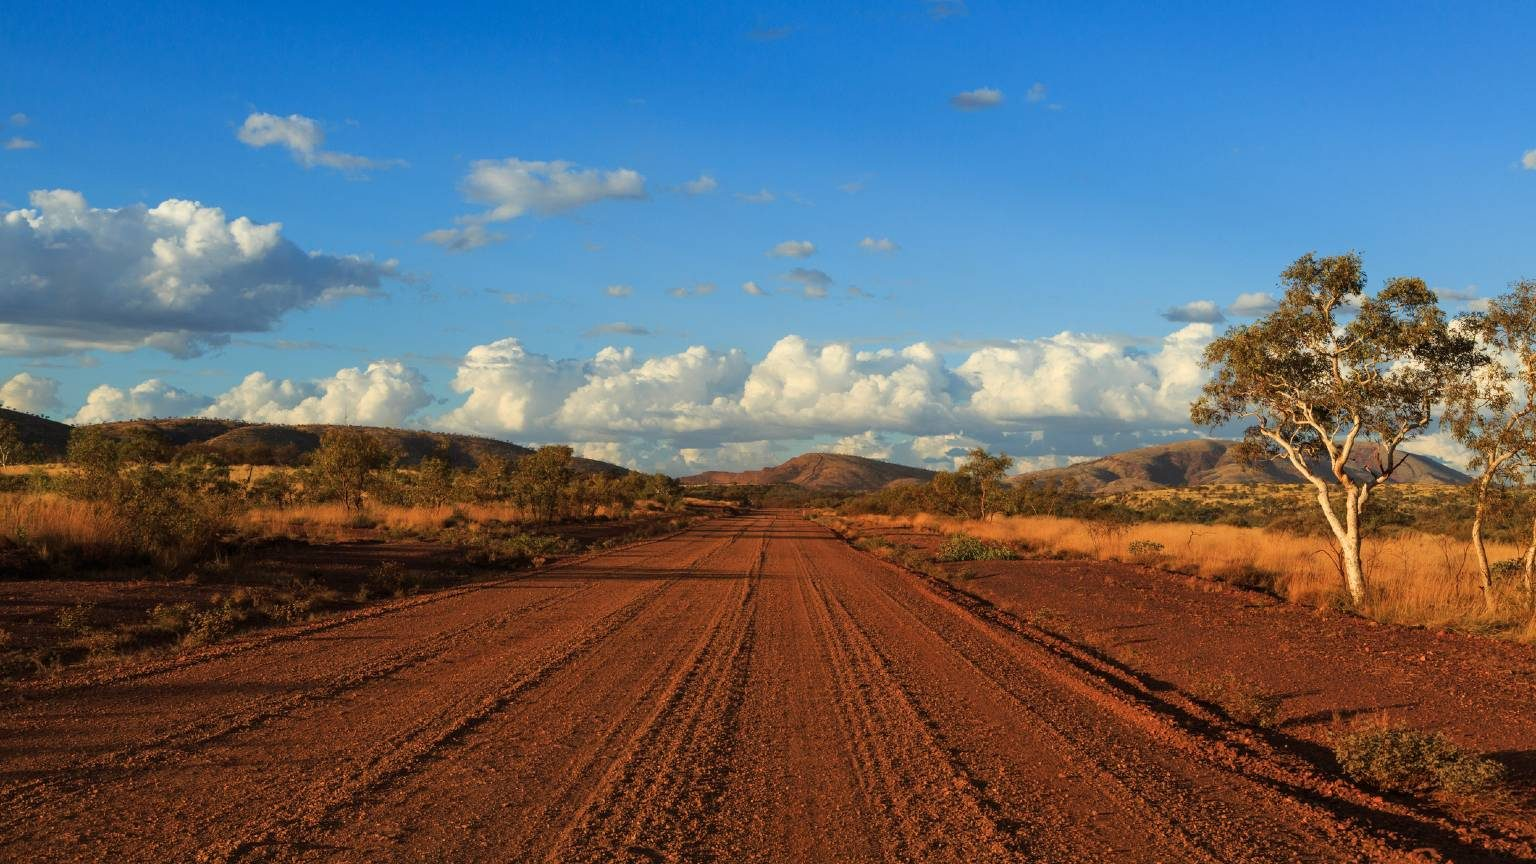 The Pilbara Region of Western Australia.